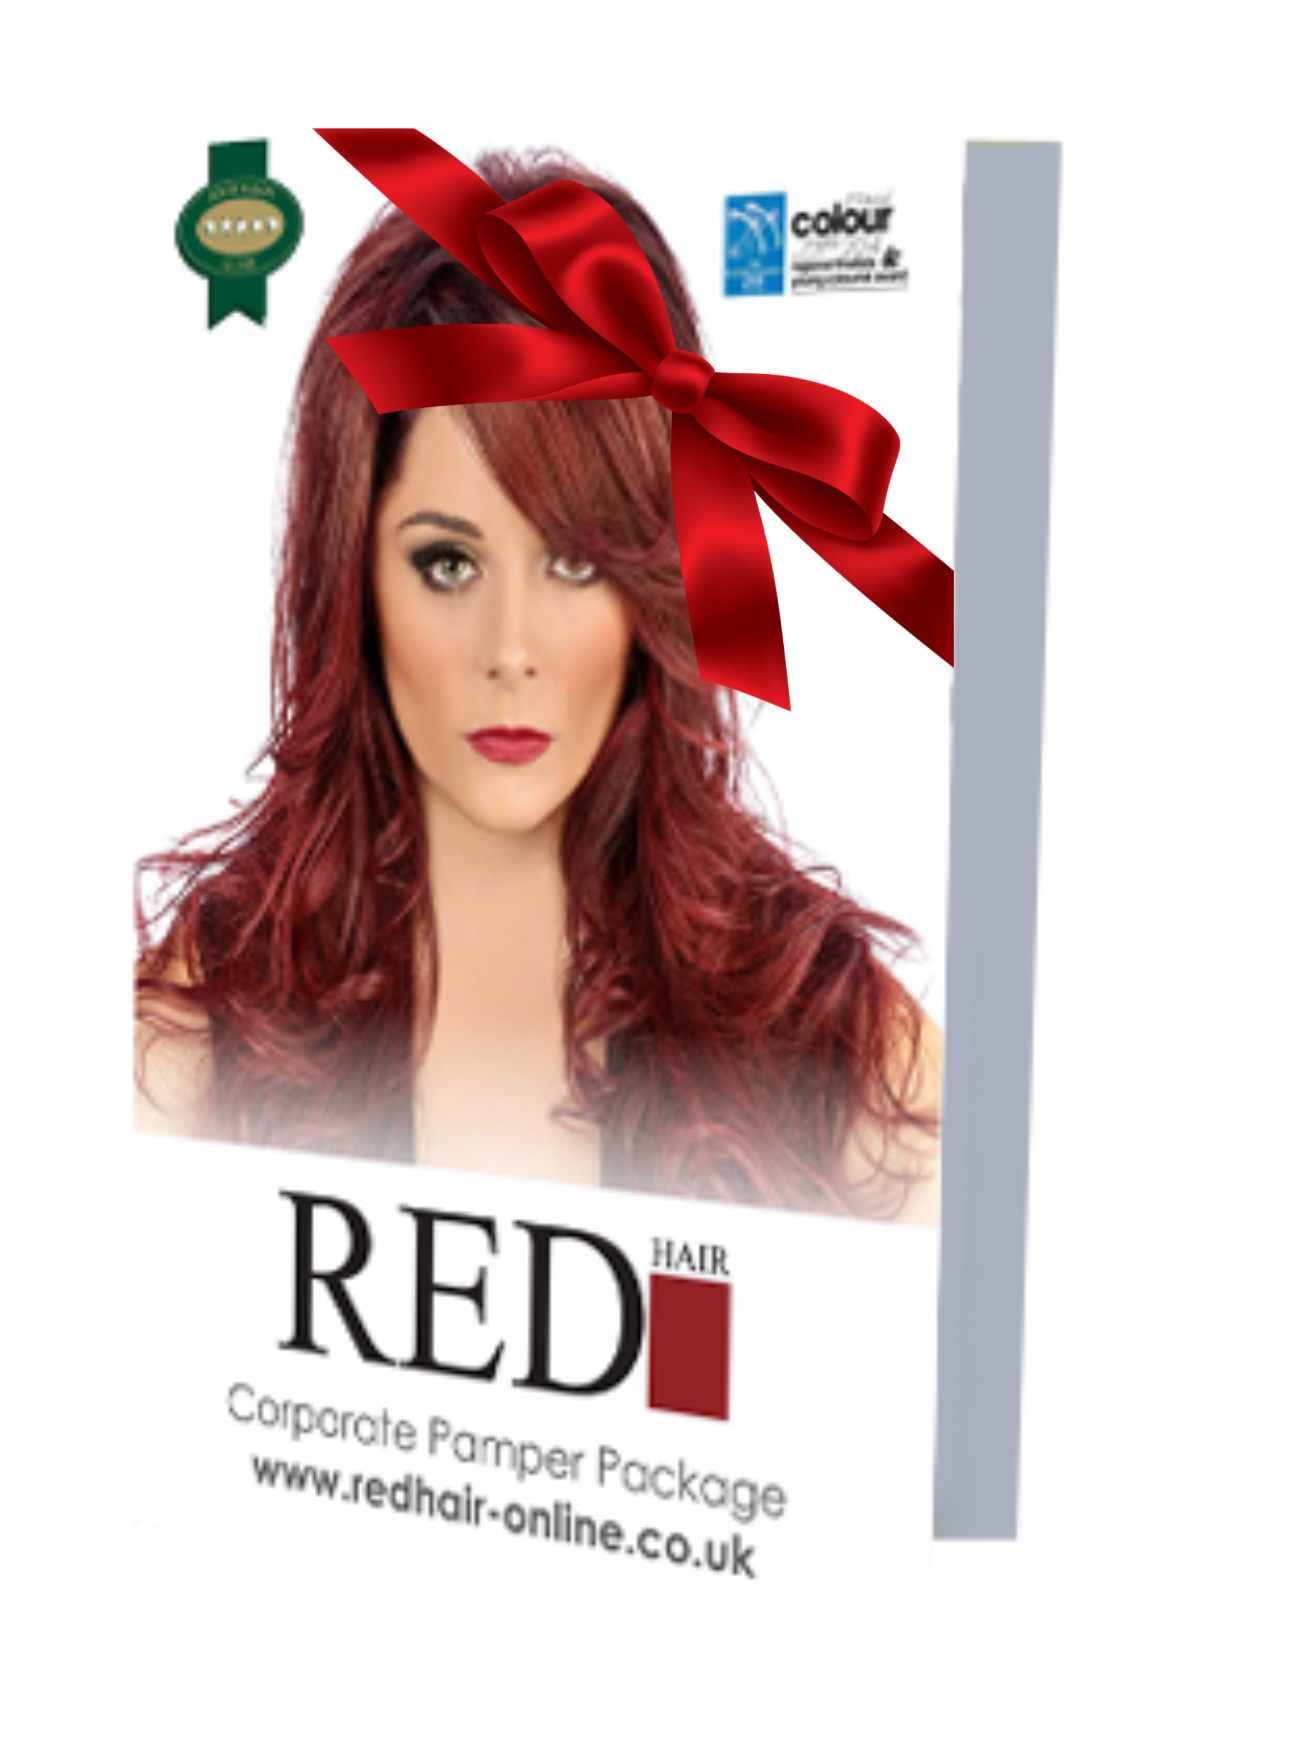 hairdresser offers Red Hair